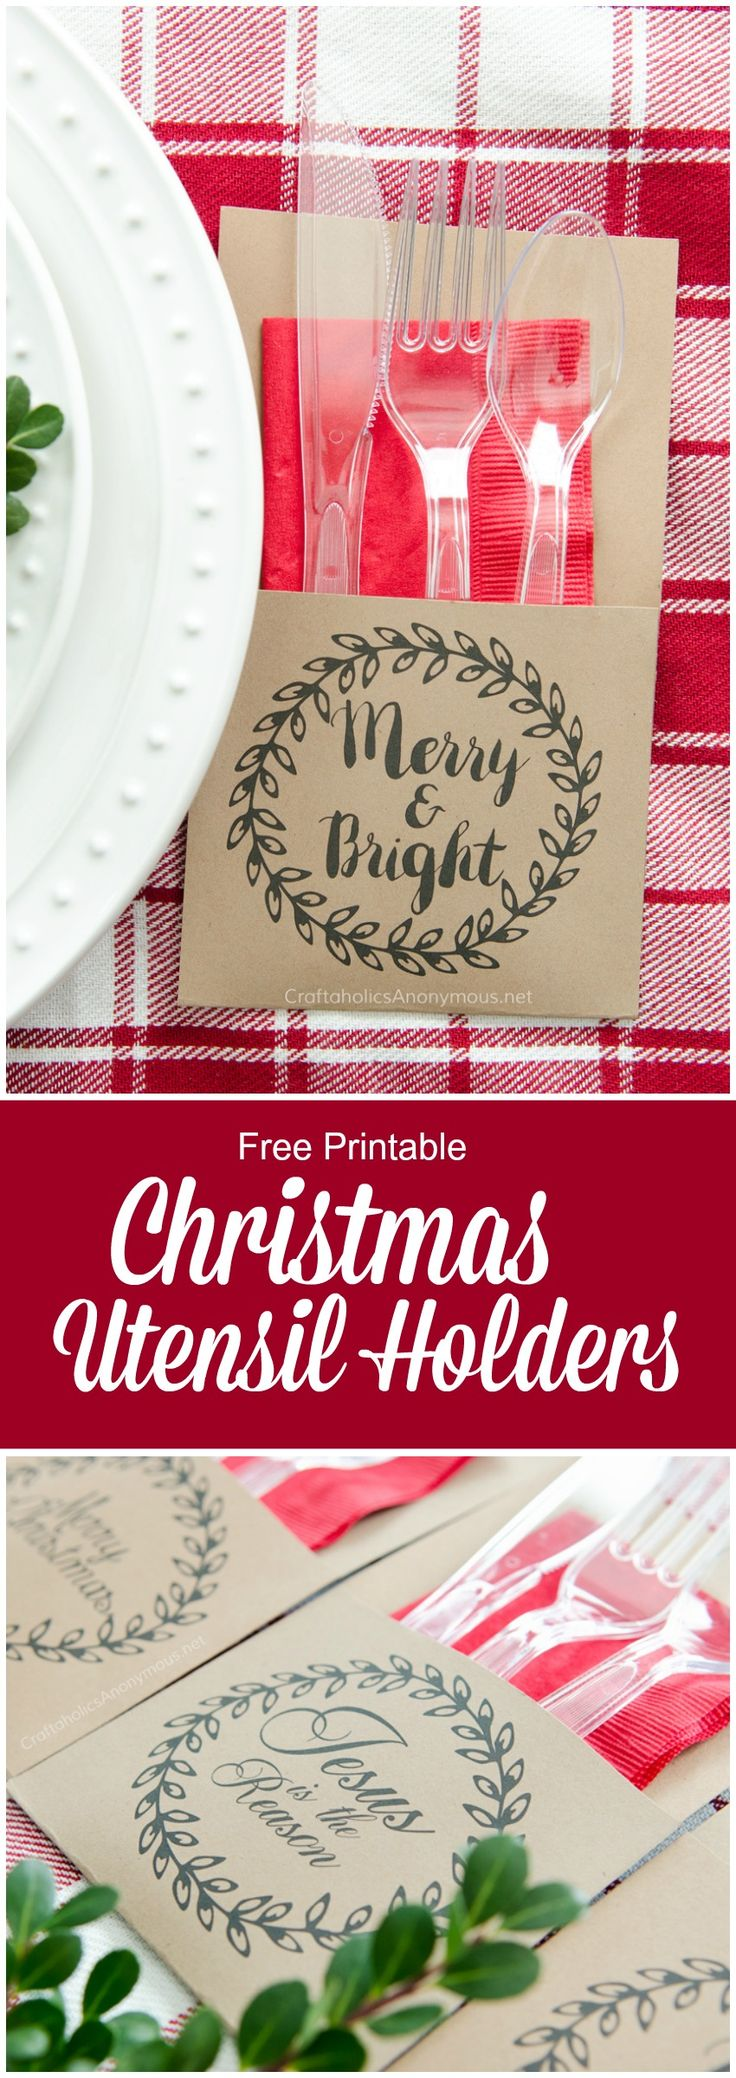 FREE PRINTABLE Christmas Utensil Holders. Print off and glue together. So easy! ...